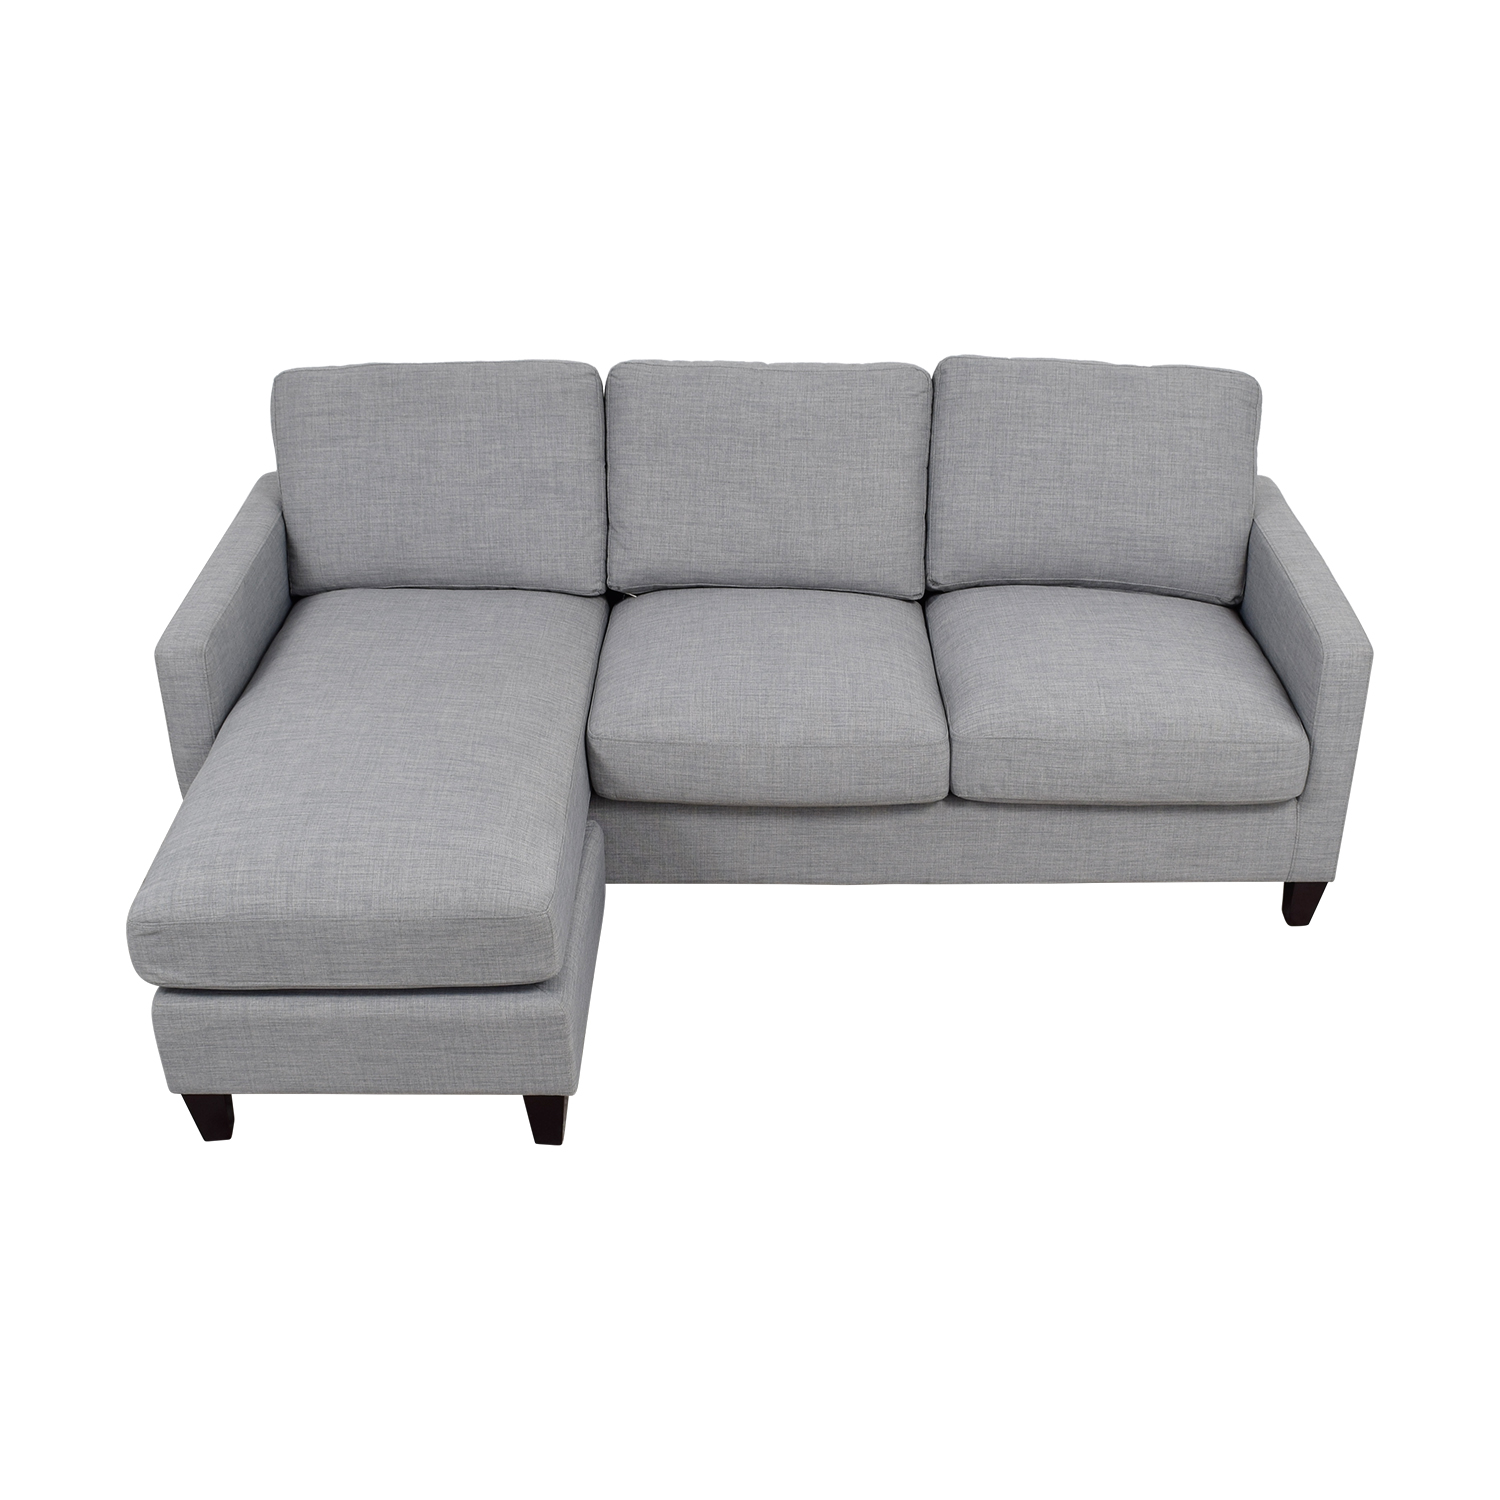 Awesome 41 Off World Market World Market Light Grey Chaise Sectional Sofas Gmtry Best Dining Table And Chair Ideas Images Gmtryco